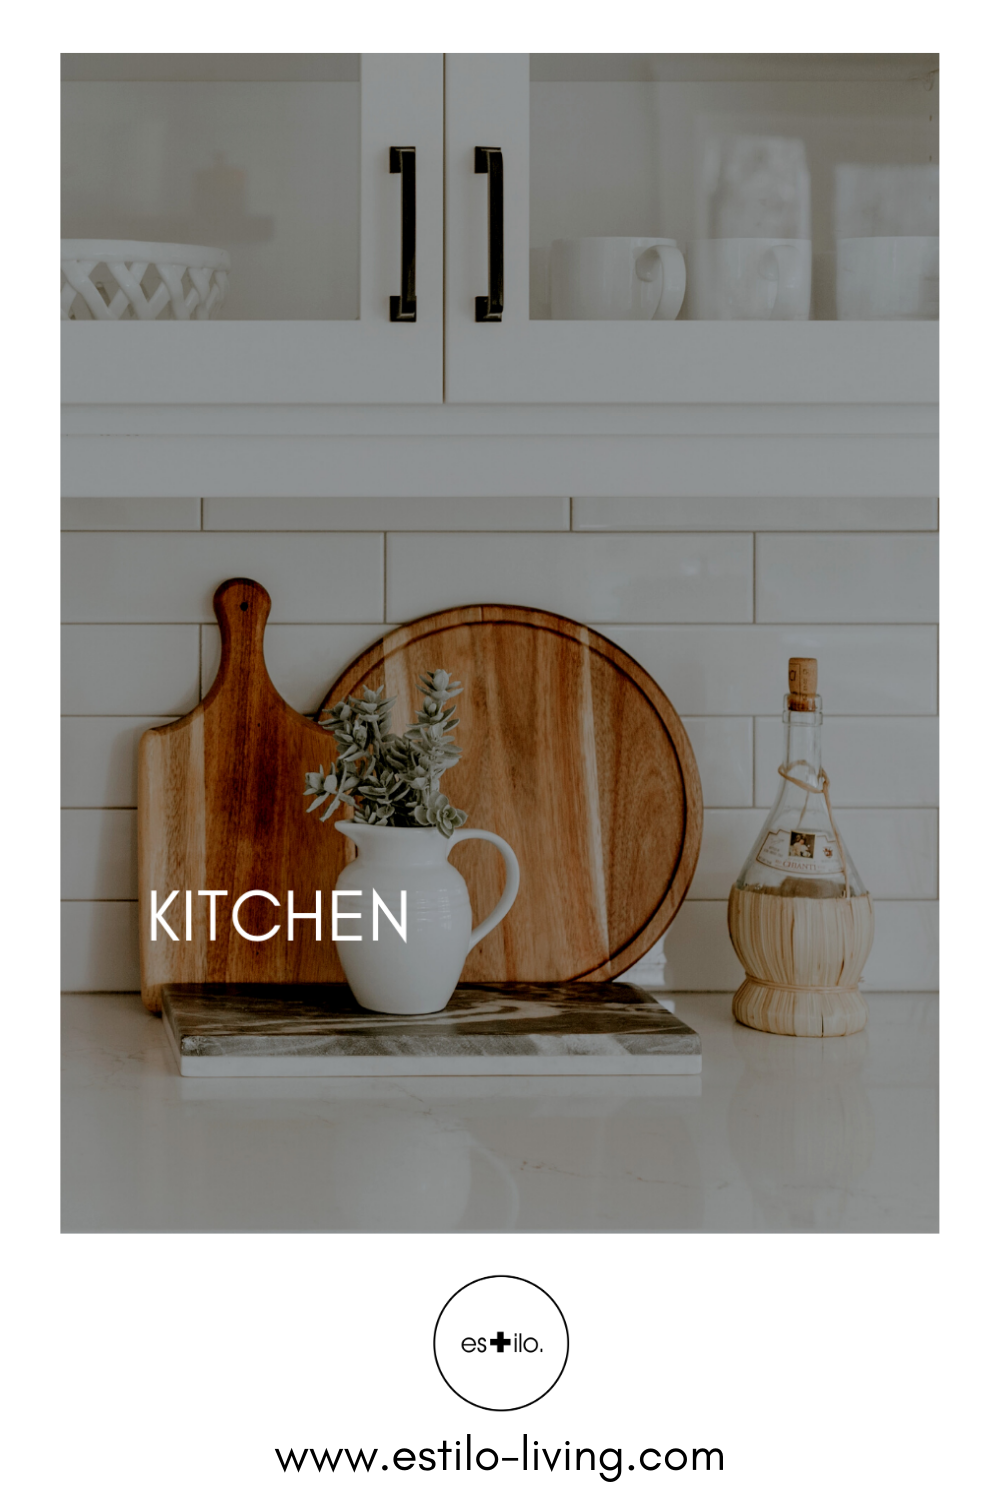 We understand that when space is limited you need to be selective when choosing only the most essential and useful items for your kitchen, and pay a close mind to space saving and storage options. That's why we have carefully chosen items that we know will help you create not only an abundant, but also comfortable and functional kitchen with our Tiny Homes Kitchen Collection. #estiloliving #tinyhomes #homedecor #tinyhomeskitchen #kitchen #kitchenstorage #storage #dining #kitchenware #apartment